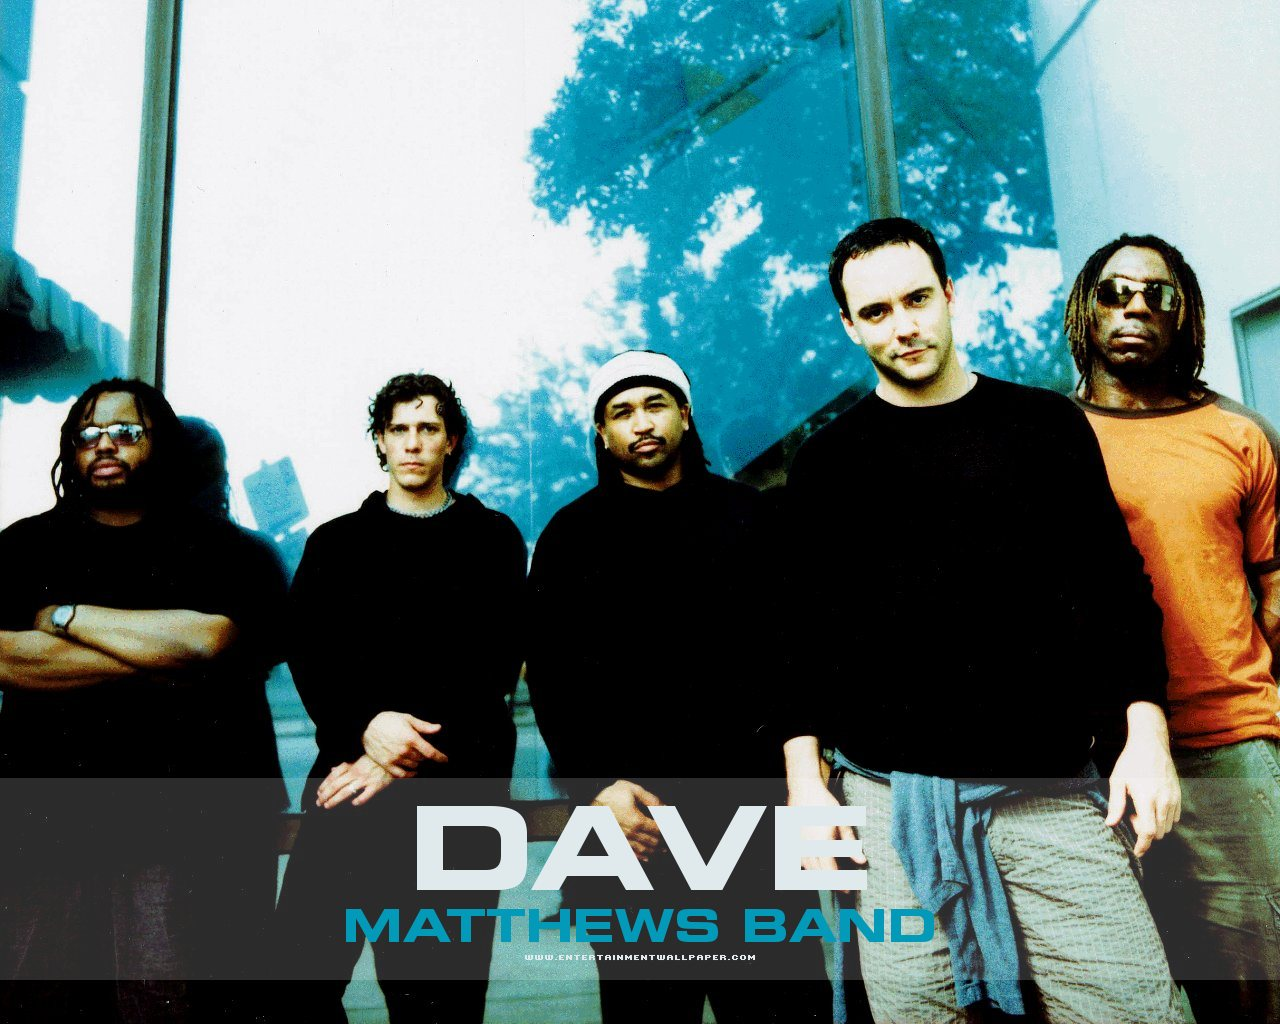 Dave Matthews Band Official Photo